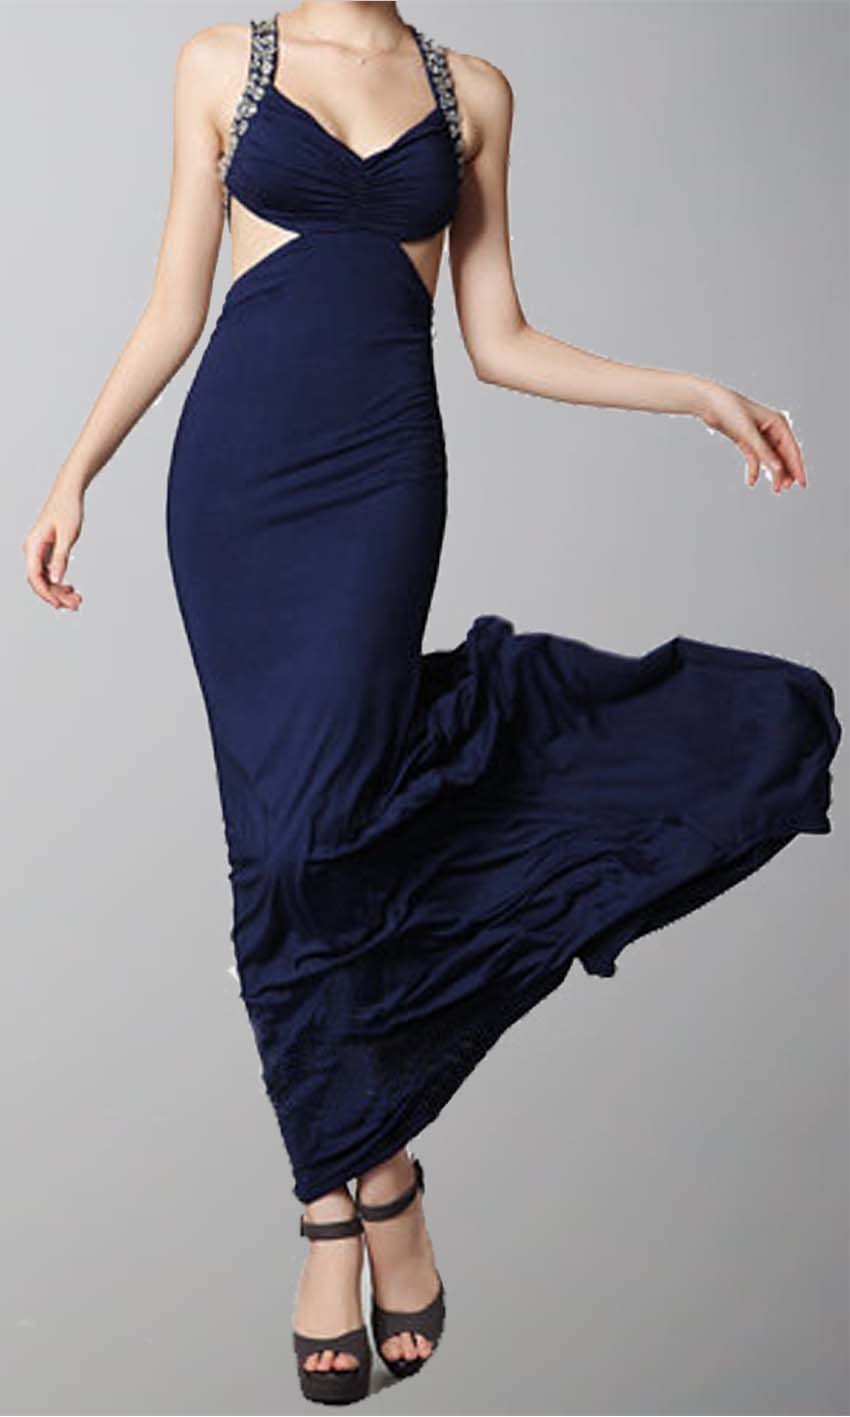 Navy Blue Cut Out Sheath Pleated Train Prom Dresses KSP292 [KSP292] - £99.00 : Cheap Prom Dresses Uk, Bridesmaid Dresses, 2014 Prom & Evening Dresses, Look for cheap elegant prom dresses 2014, cocktail gowns, or dresses for special occasions? kissprom.co.uk offers various bridesmaid dresses, evening dress, free shipping to UK etc.